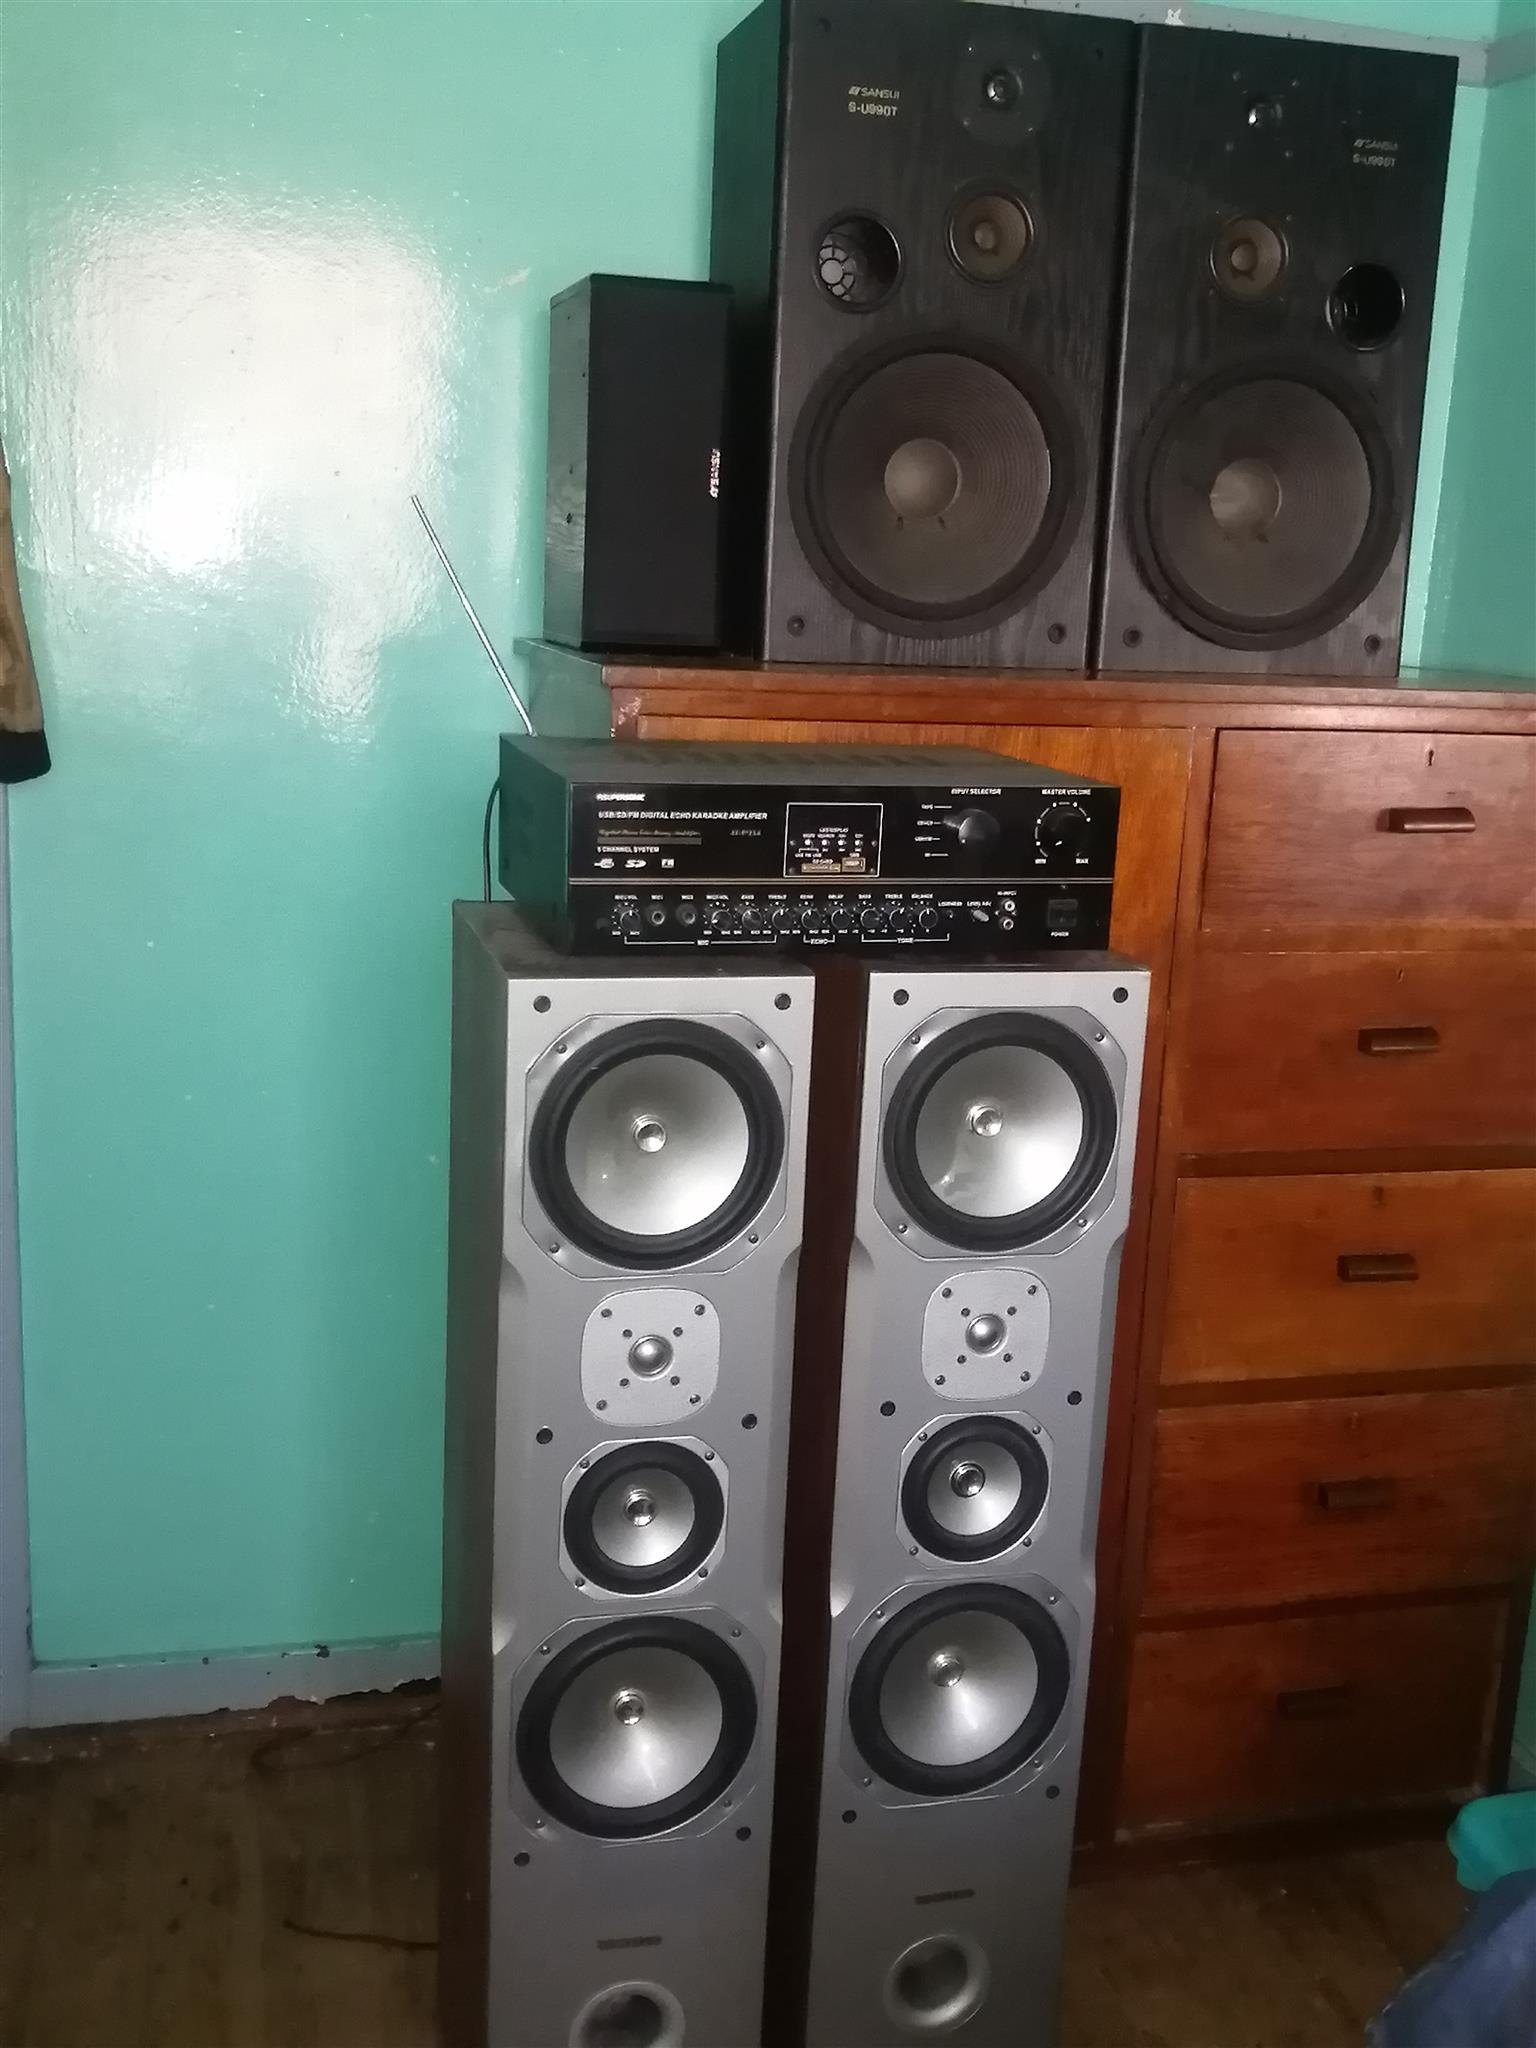 house sound Amp and speakers